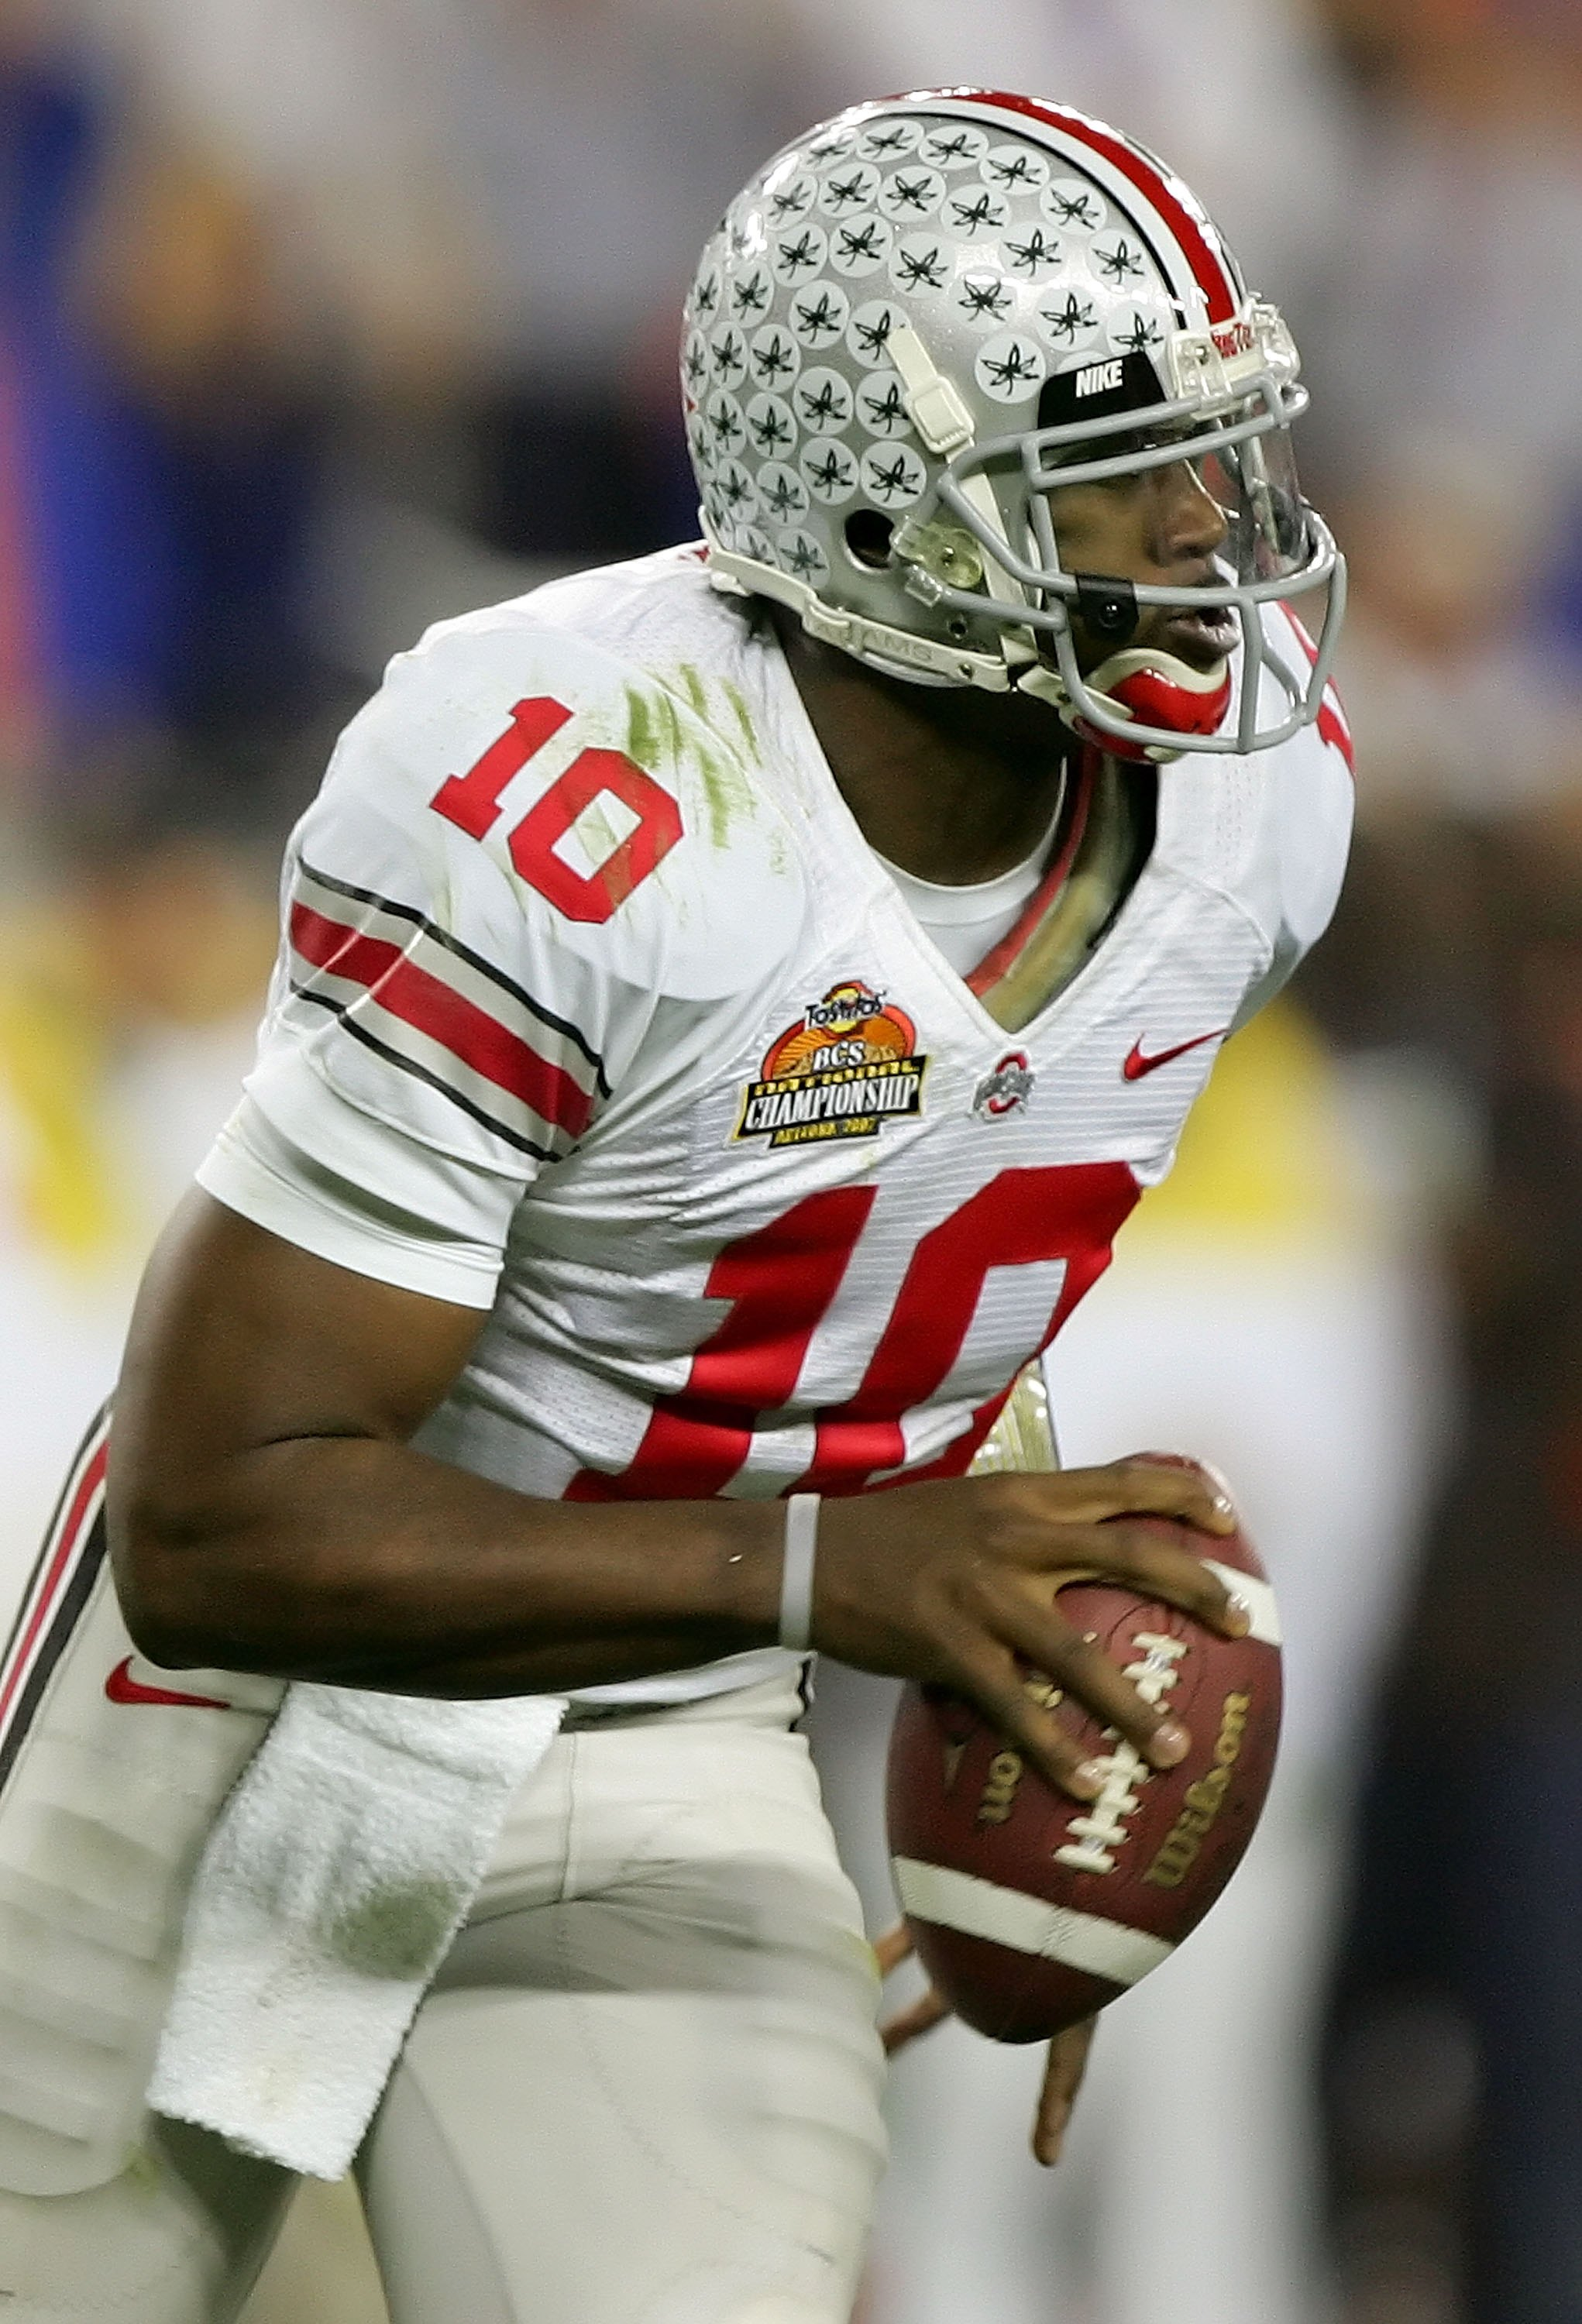 GLENDALE, AZ - JANUARY 08:  Quarterback Troy Smith #10 of the Ohio State Buckeyes runs with the ball in the second quarter during the 2007 Tostitos BCS National Championship Game against the Florida Gators at the University of Phoenix Stadium on January 8